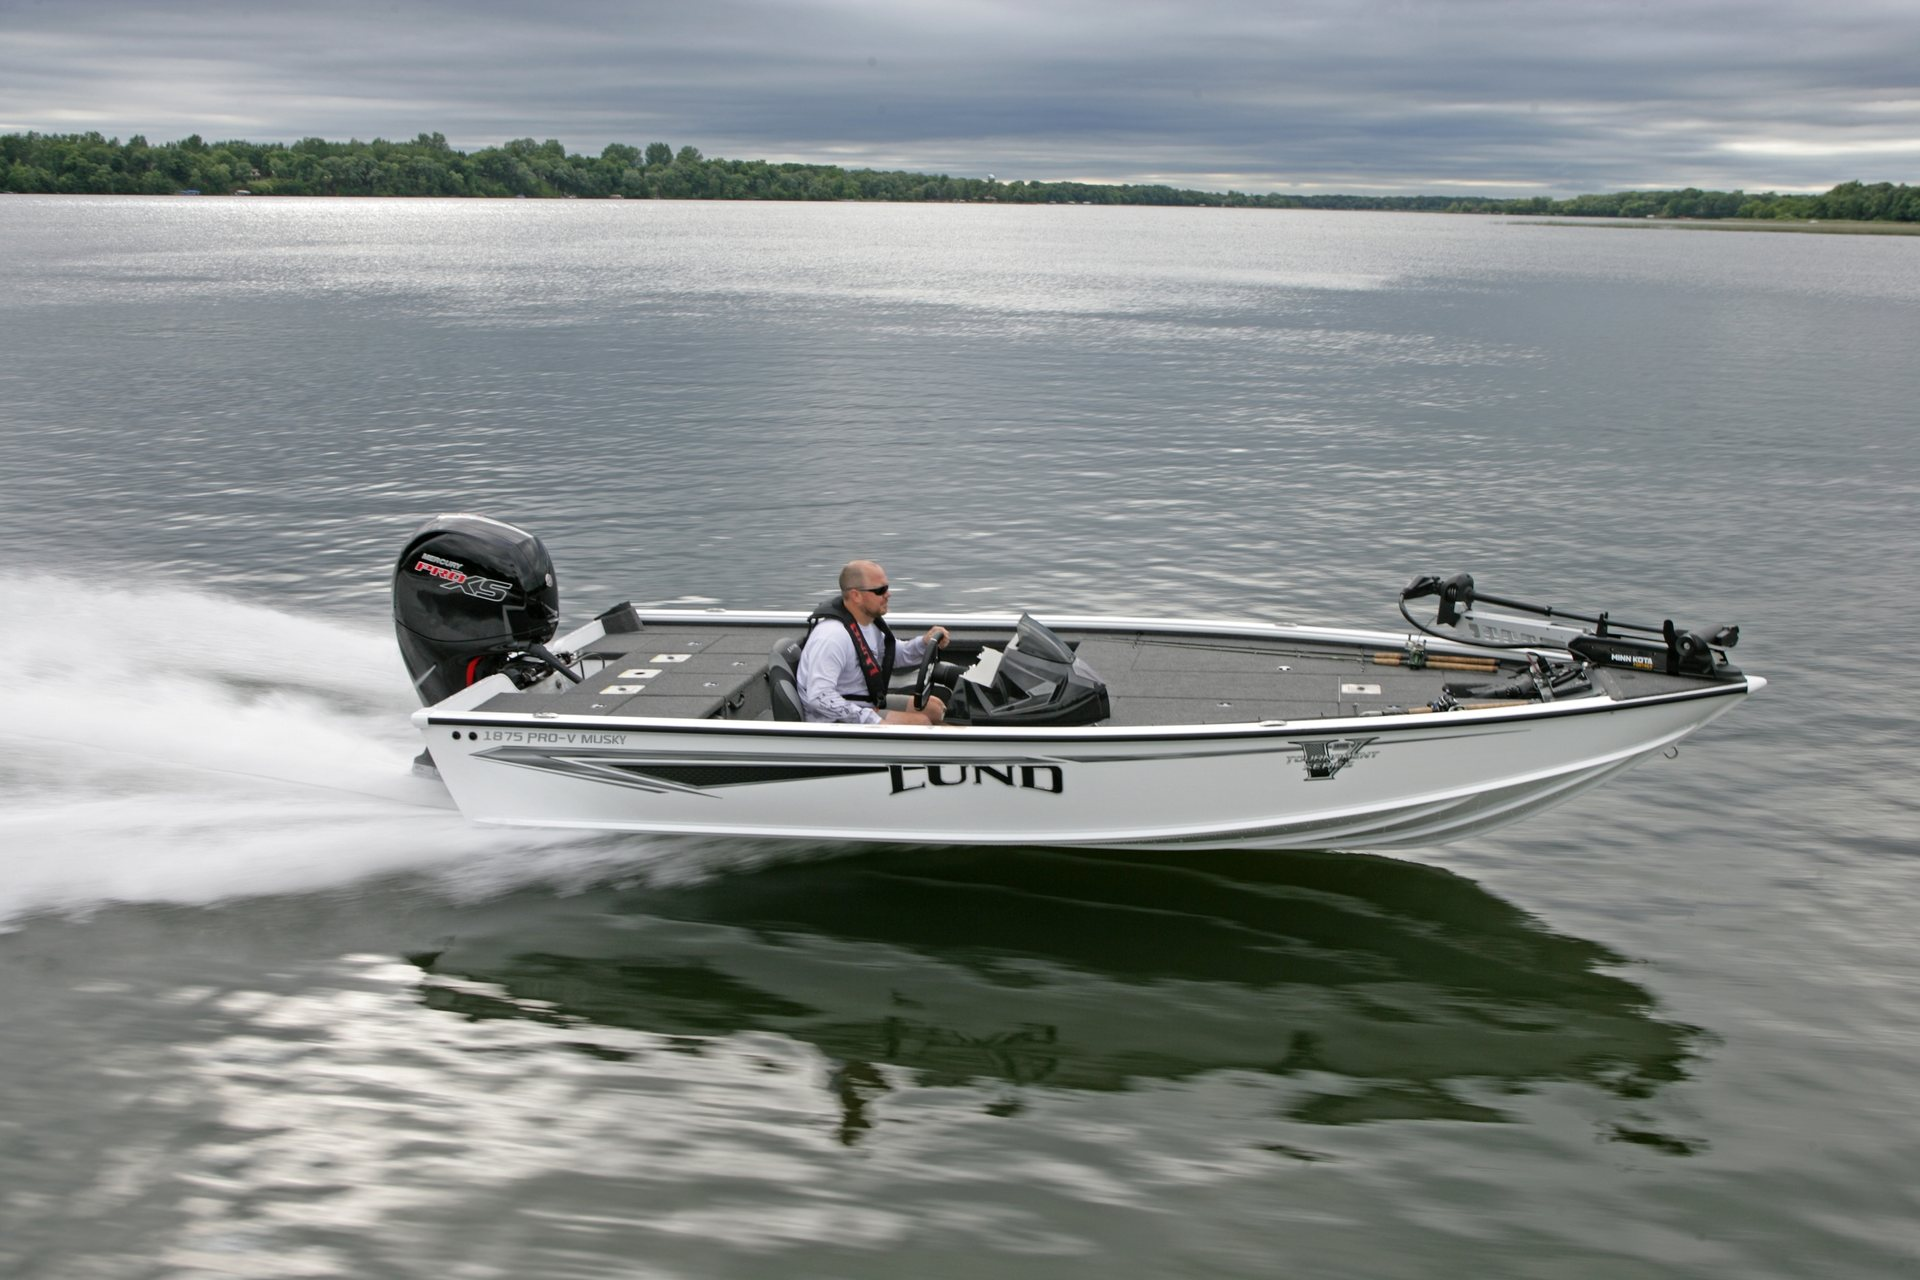 360 VR Virtual Tours of the Lund 1875 Pro-V Musky XS – VRCLOUD